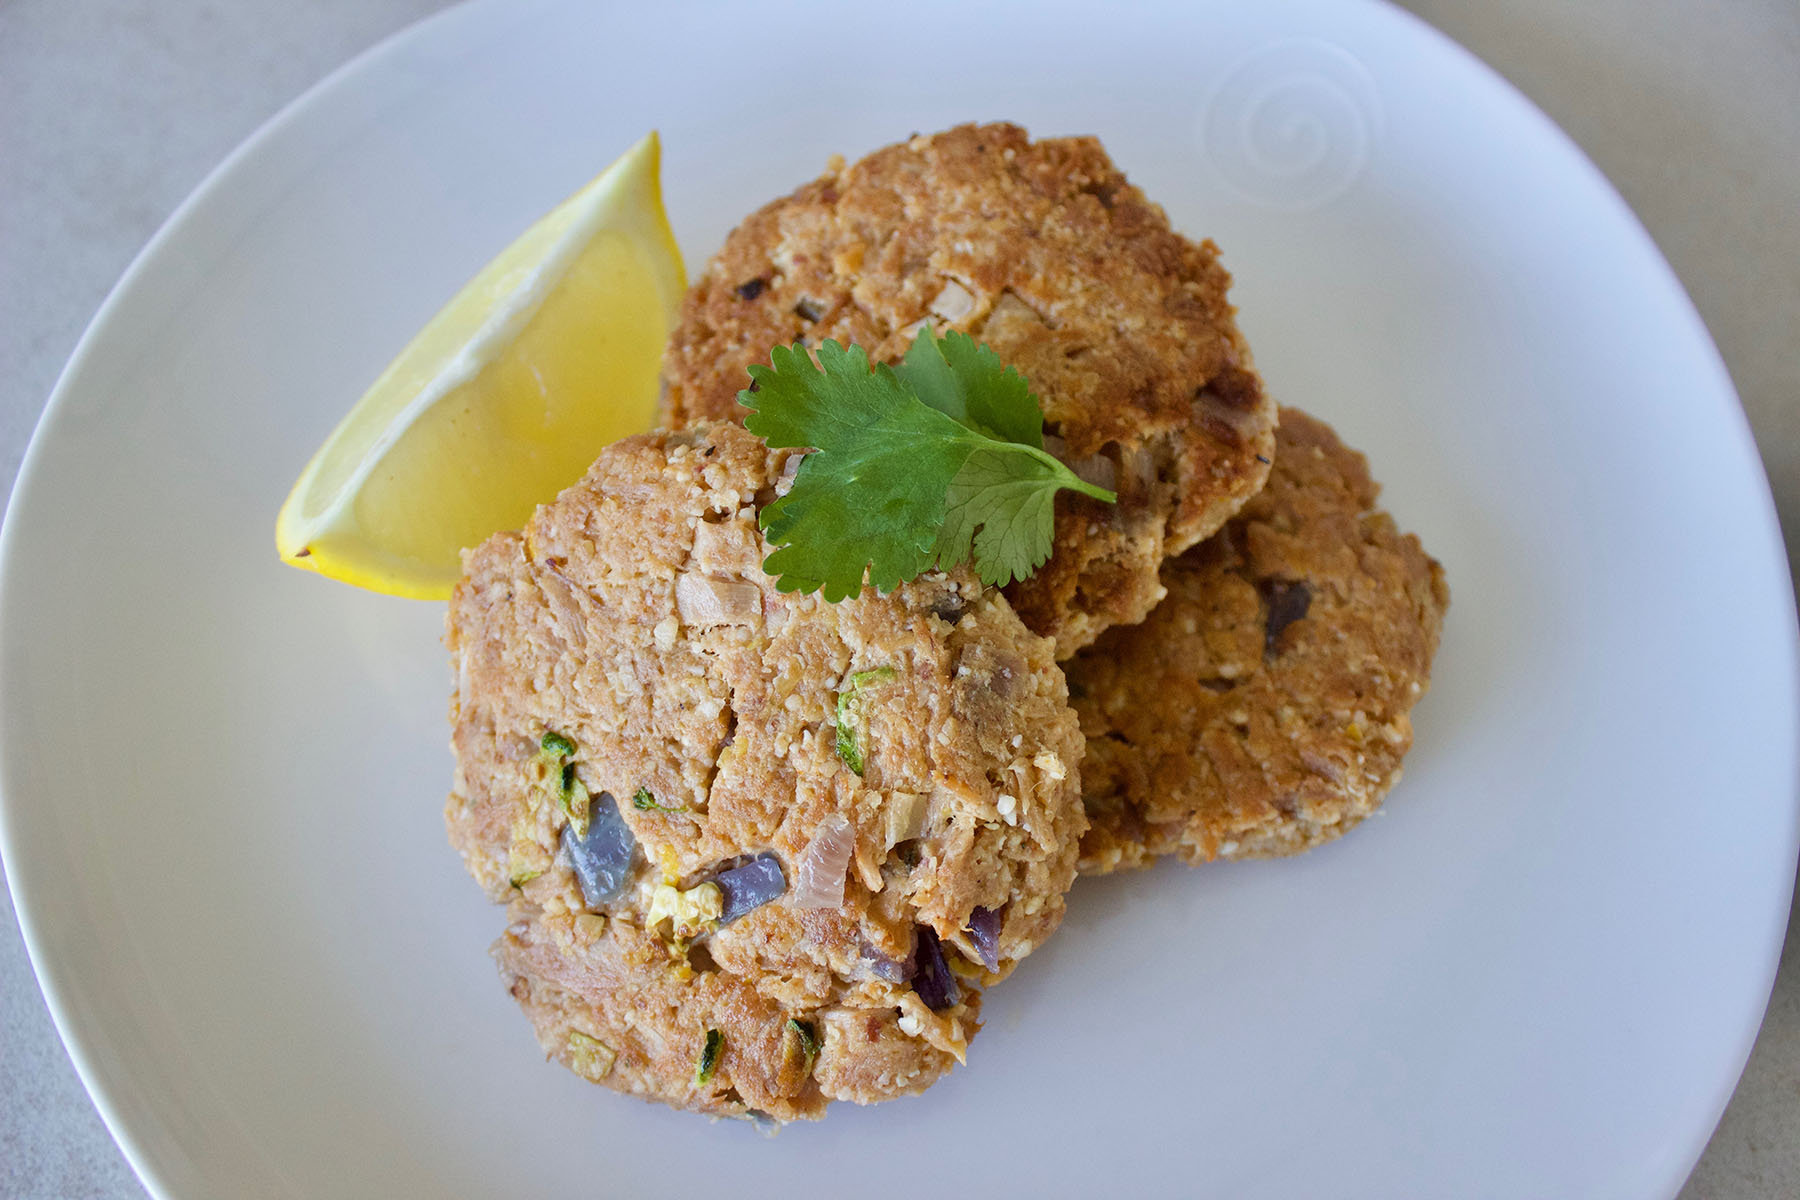 Zesty Tuna Patties